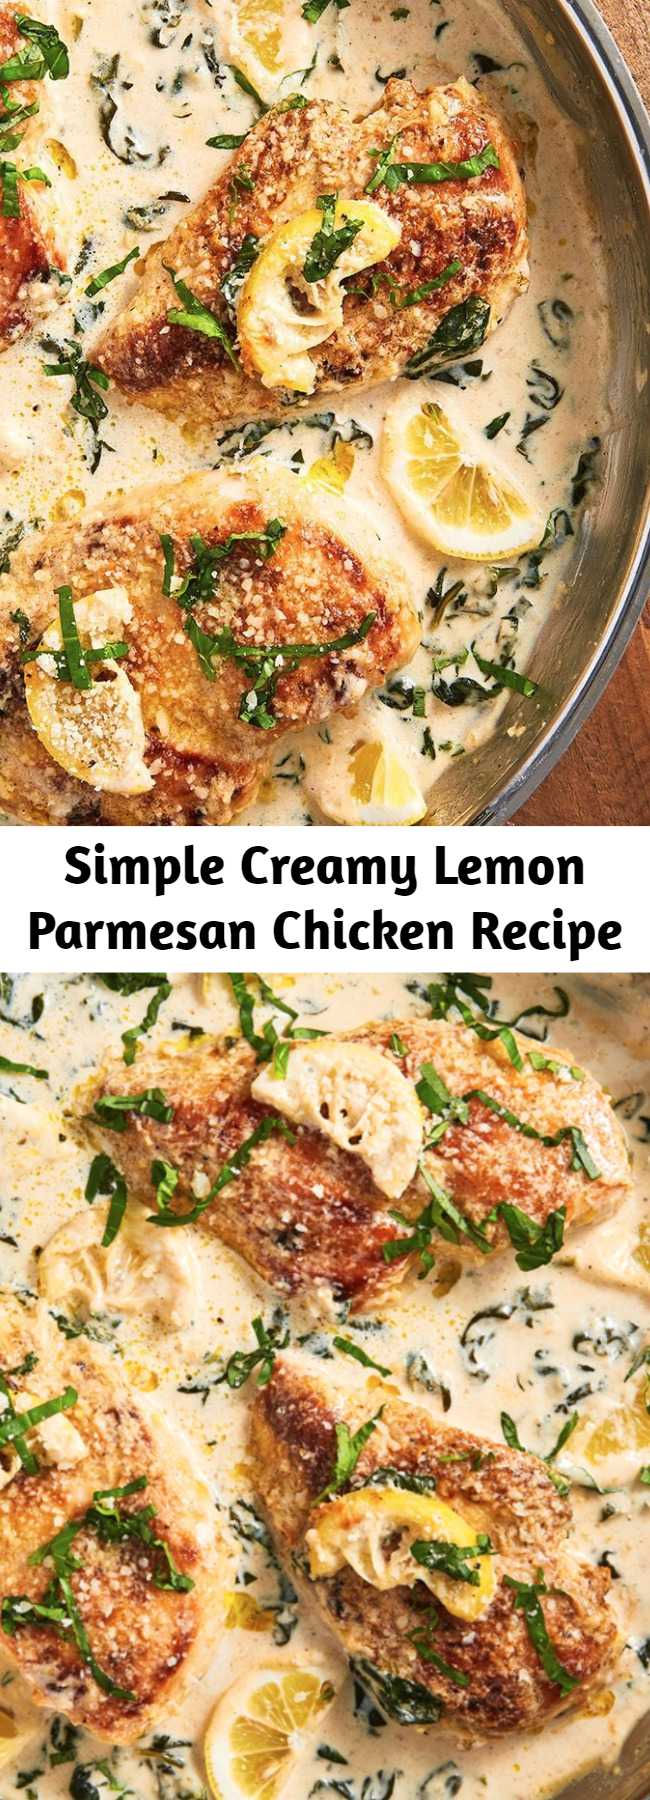 Simple Creamy Lemon Parmesan Chicken Recipe - When it comes to weeknight dinners, this is what we dream of. It's simple, creamy, and so dang satisfying. Have dinner ready in a snap with this one pan meal.